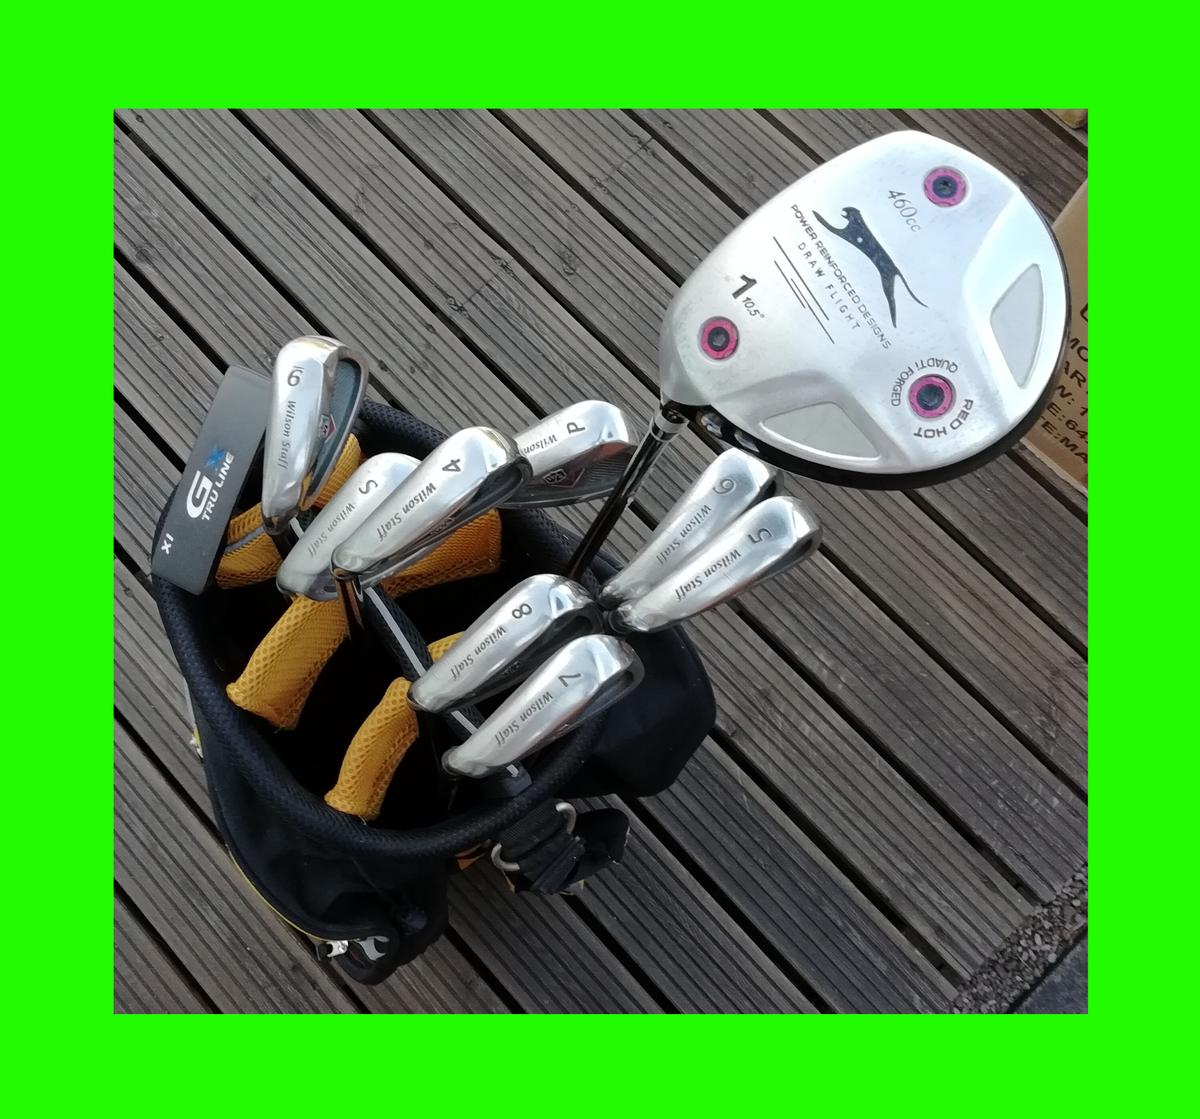 Left Handed Golf Clubs & Bag - Barely Used in CV3 Coventry for